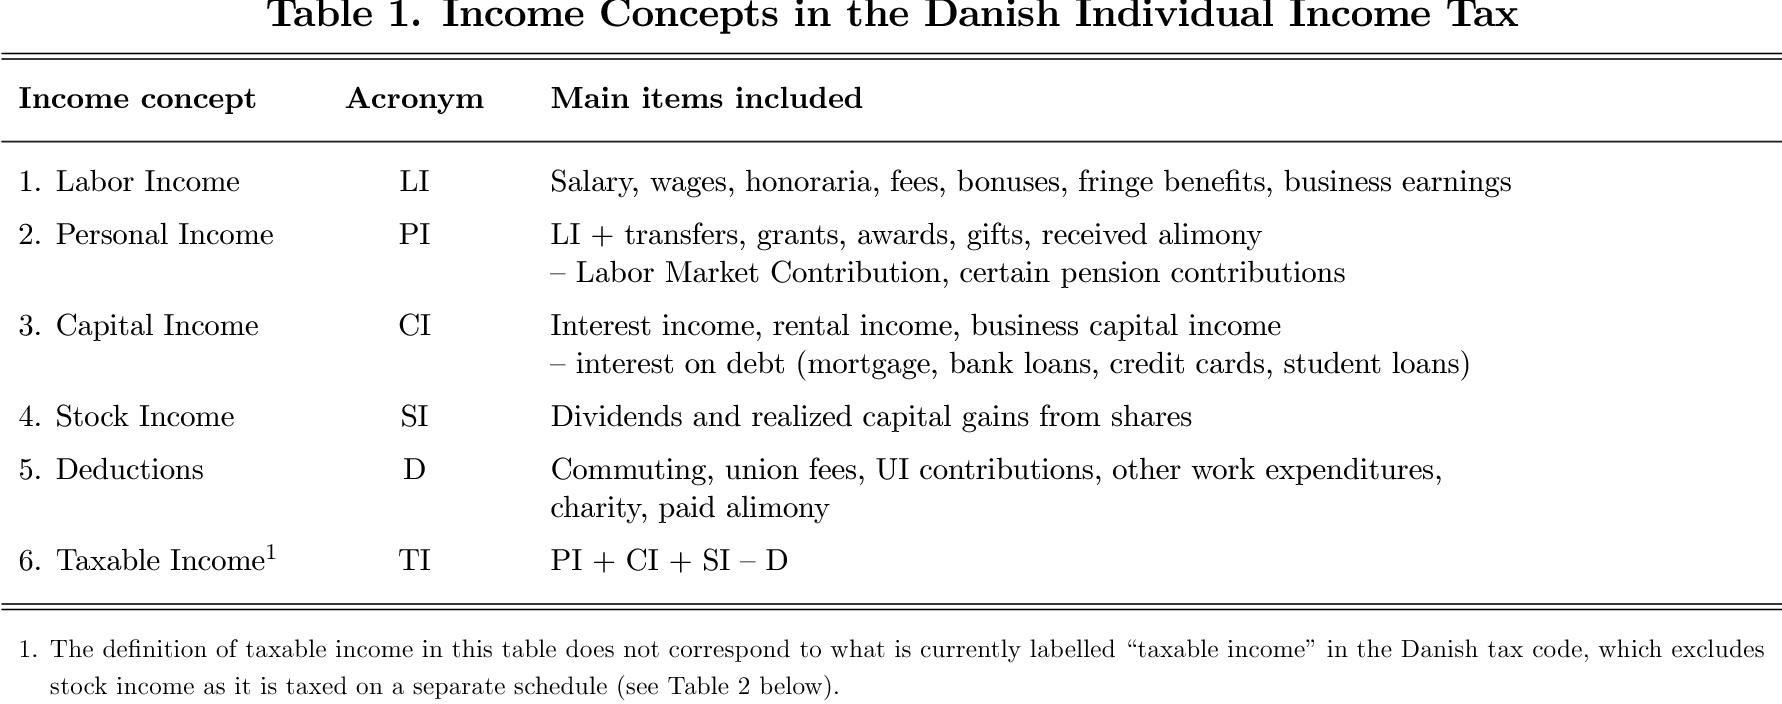 estimating taxable income responses using danish tax reforms